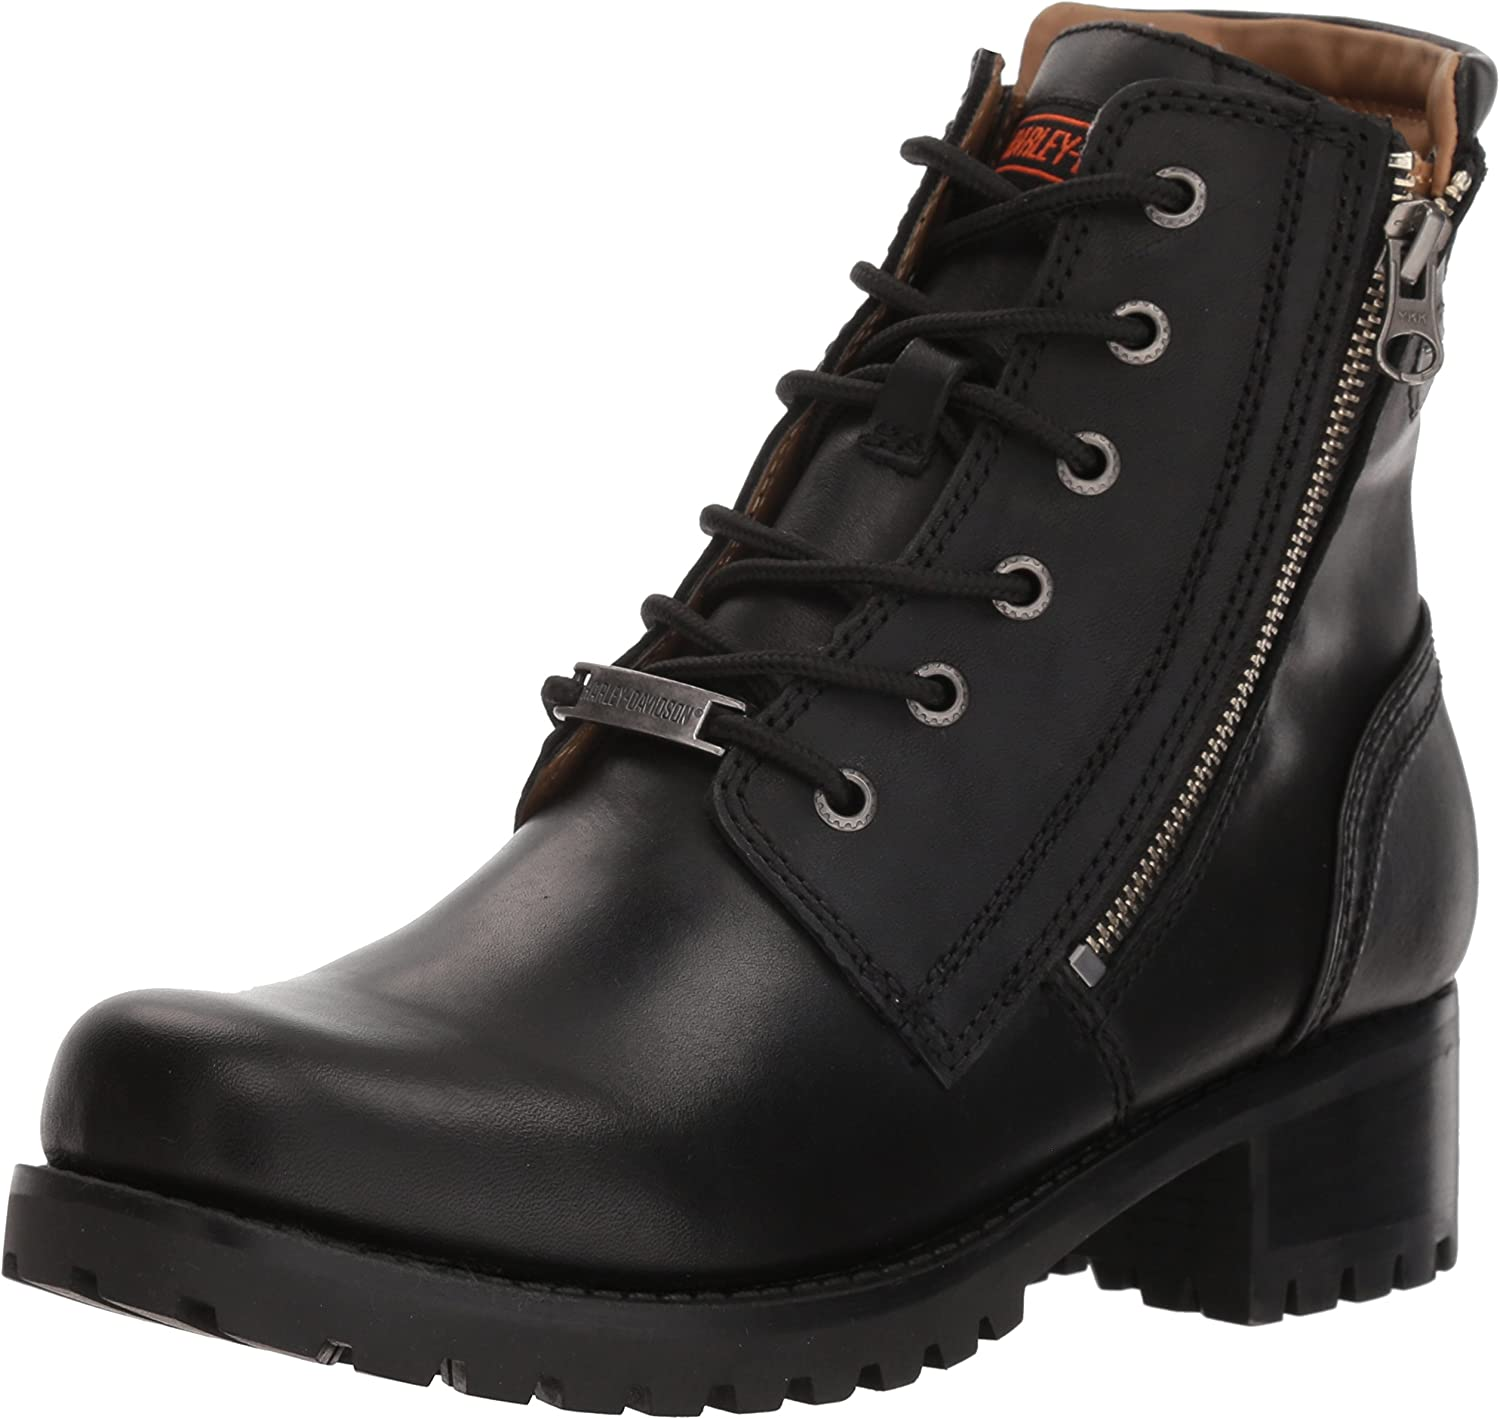 HARLEY-DAVIDSON FOOTWEAR Womens Becky Motorcycle Boot